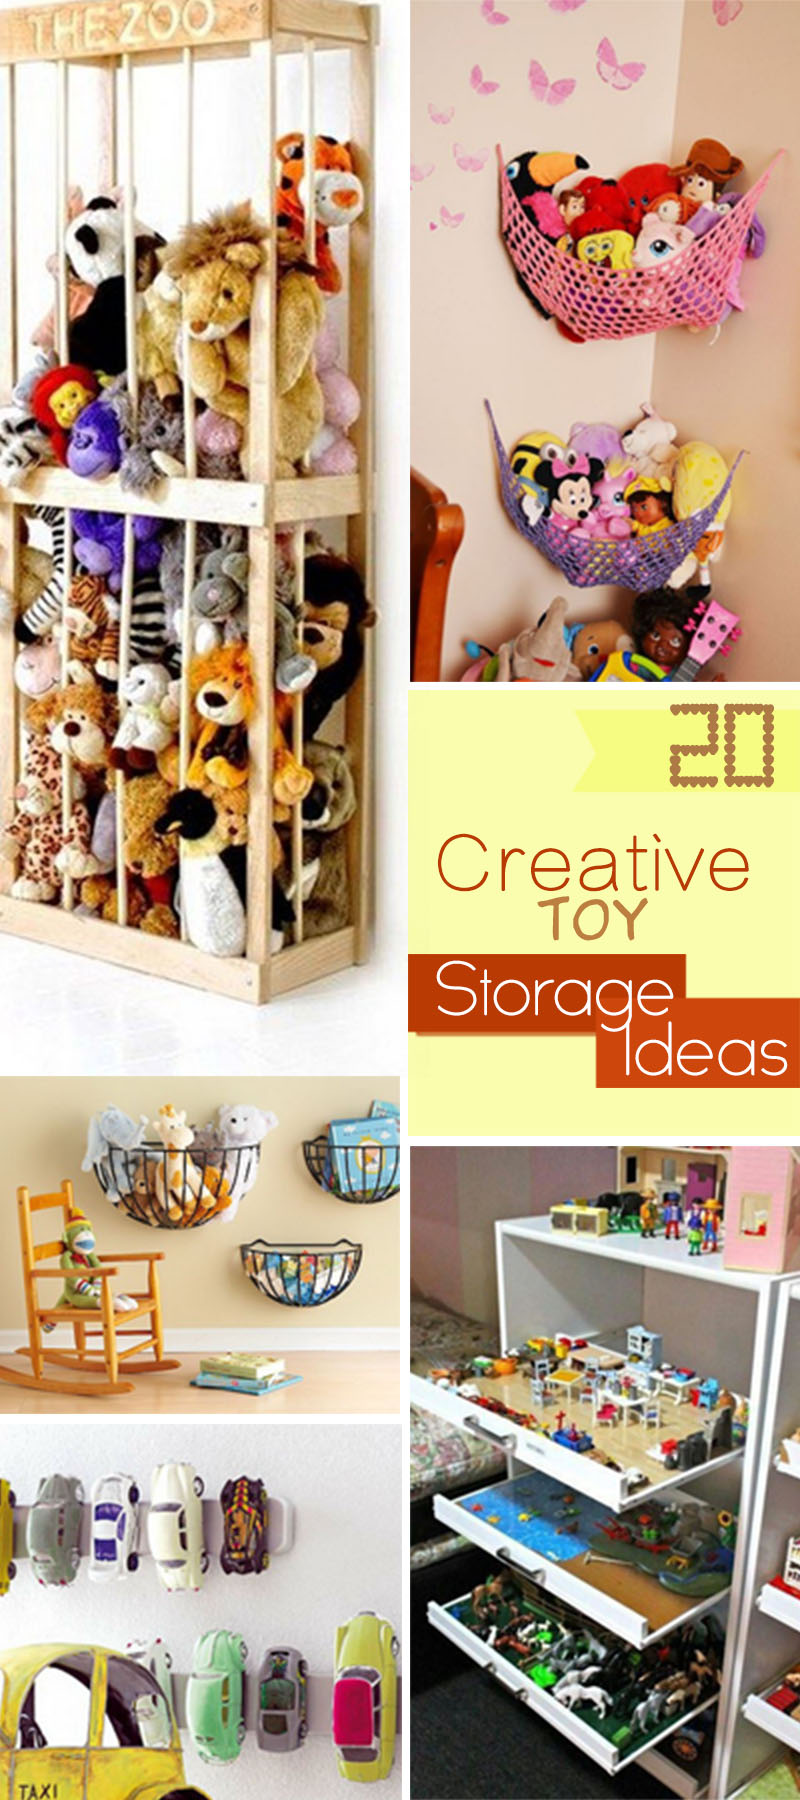 Creative Toy Storage Ideas!